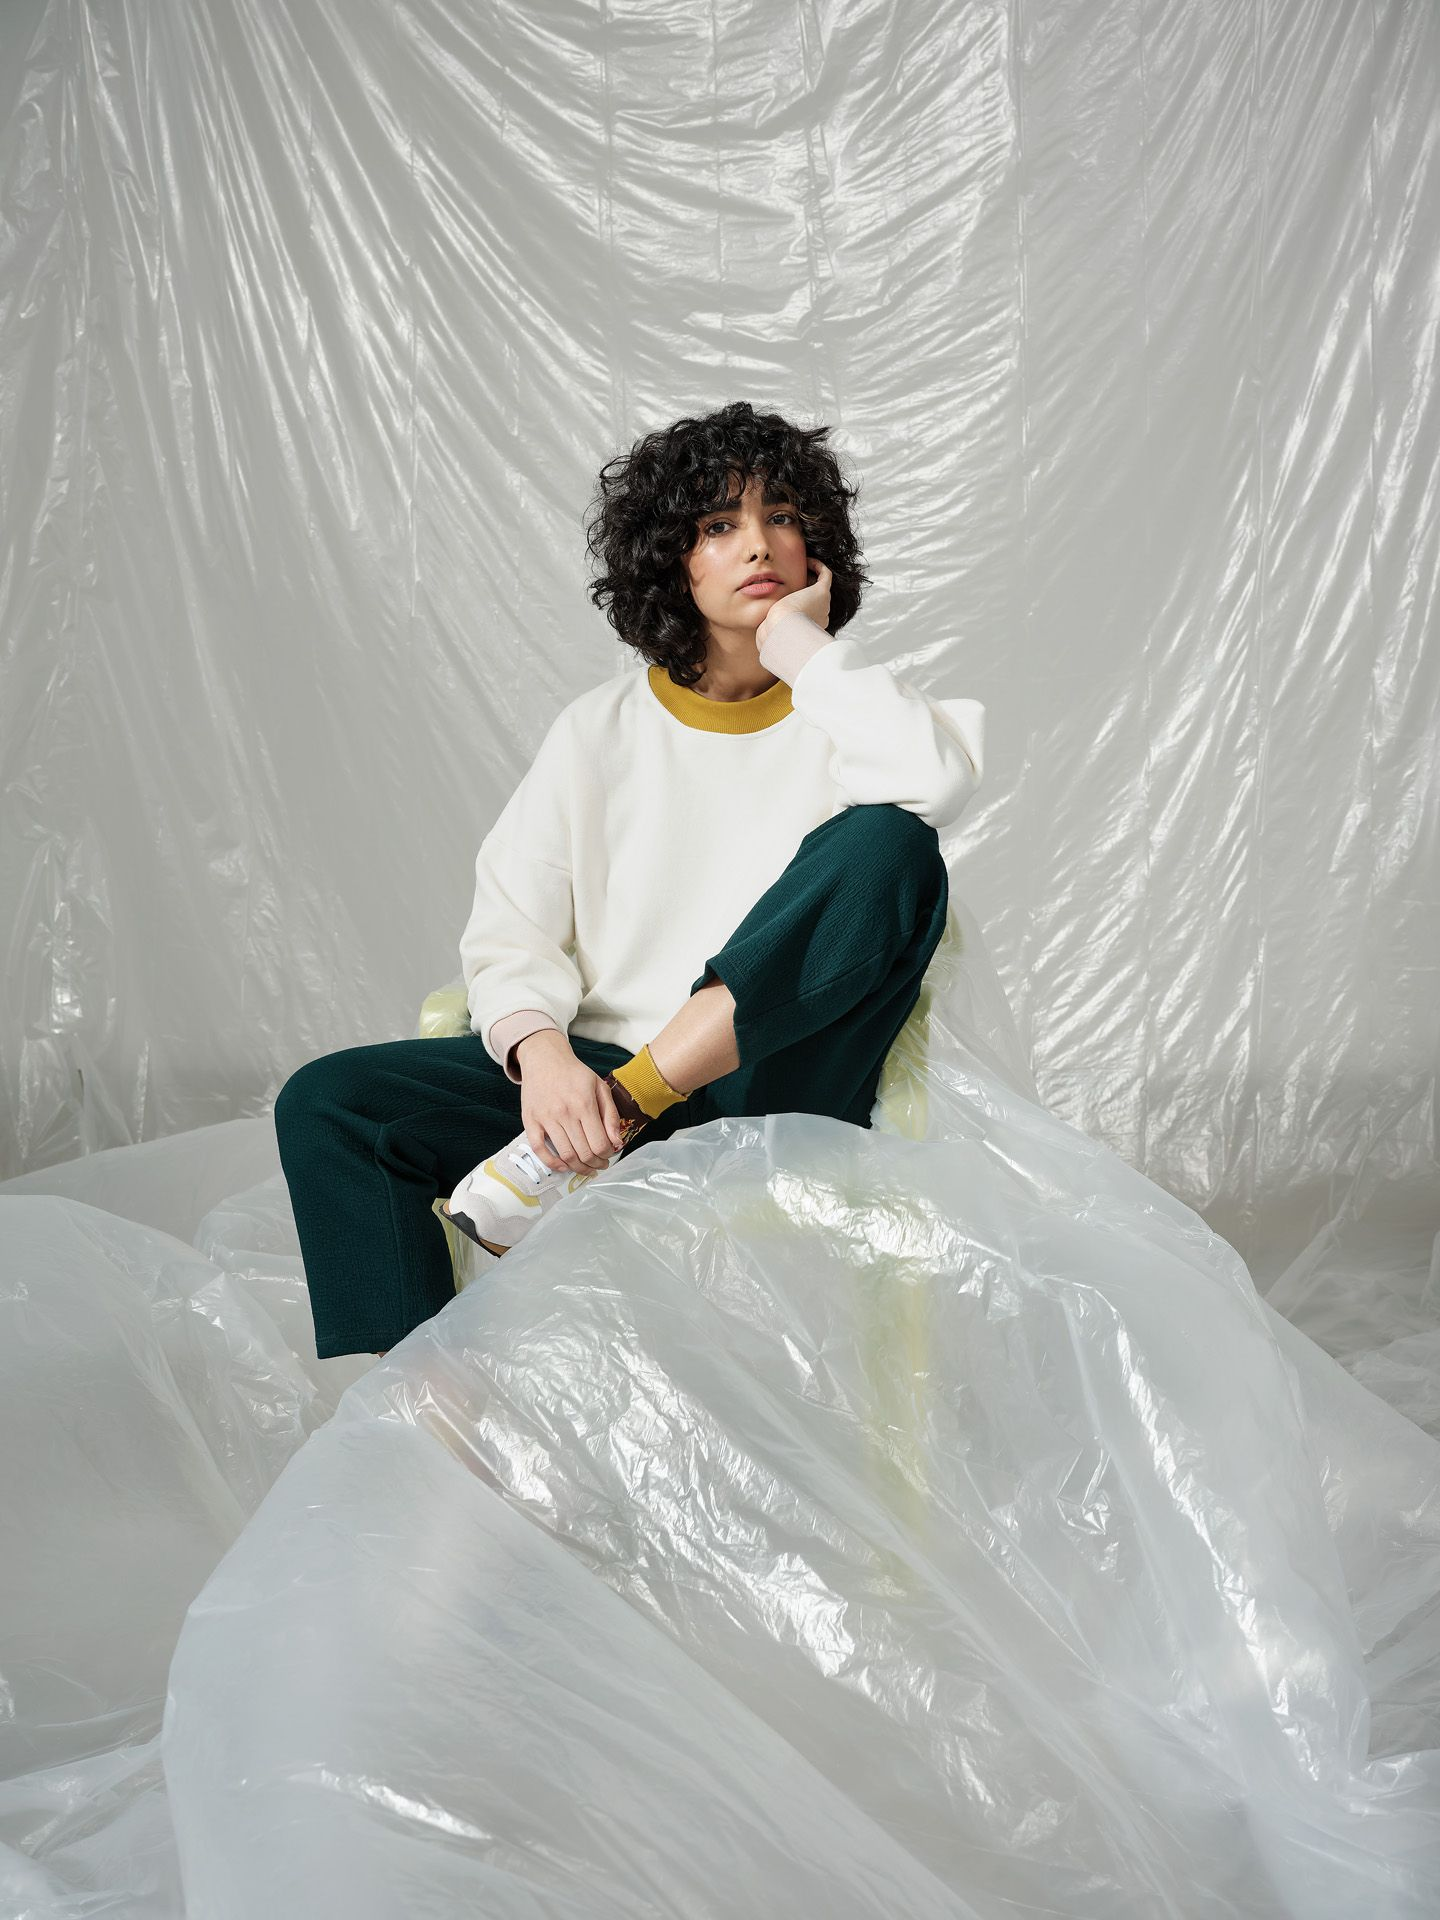 curly haired female model wearing white sweater with mustard collar and dark green pants sitting on green plastic chair covered in plastic construction sheet looking at camera photographed by Maxyme G Delisle with artistic direction and styling by Studio TB